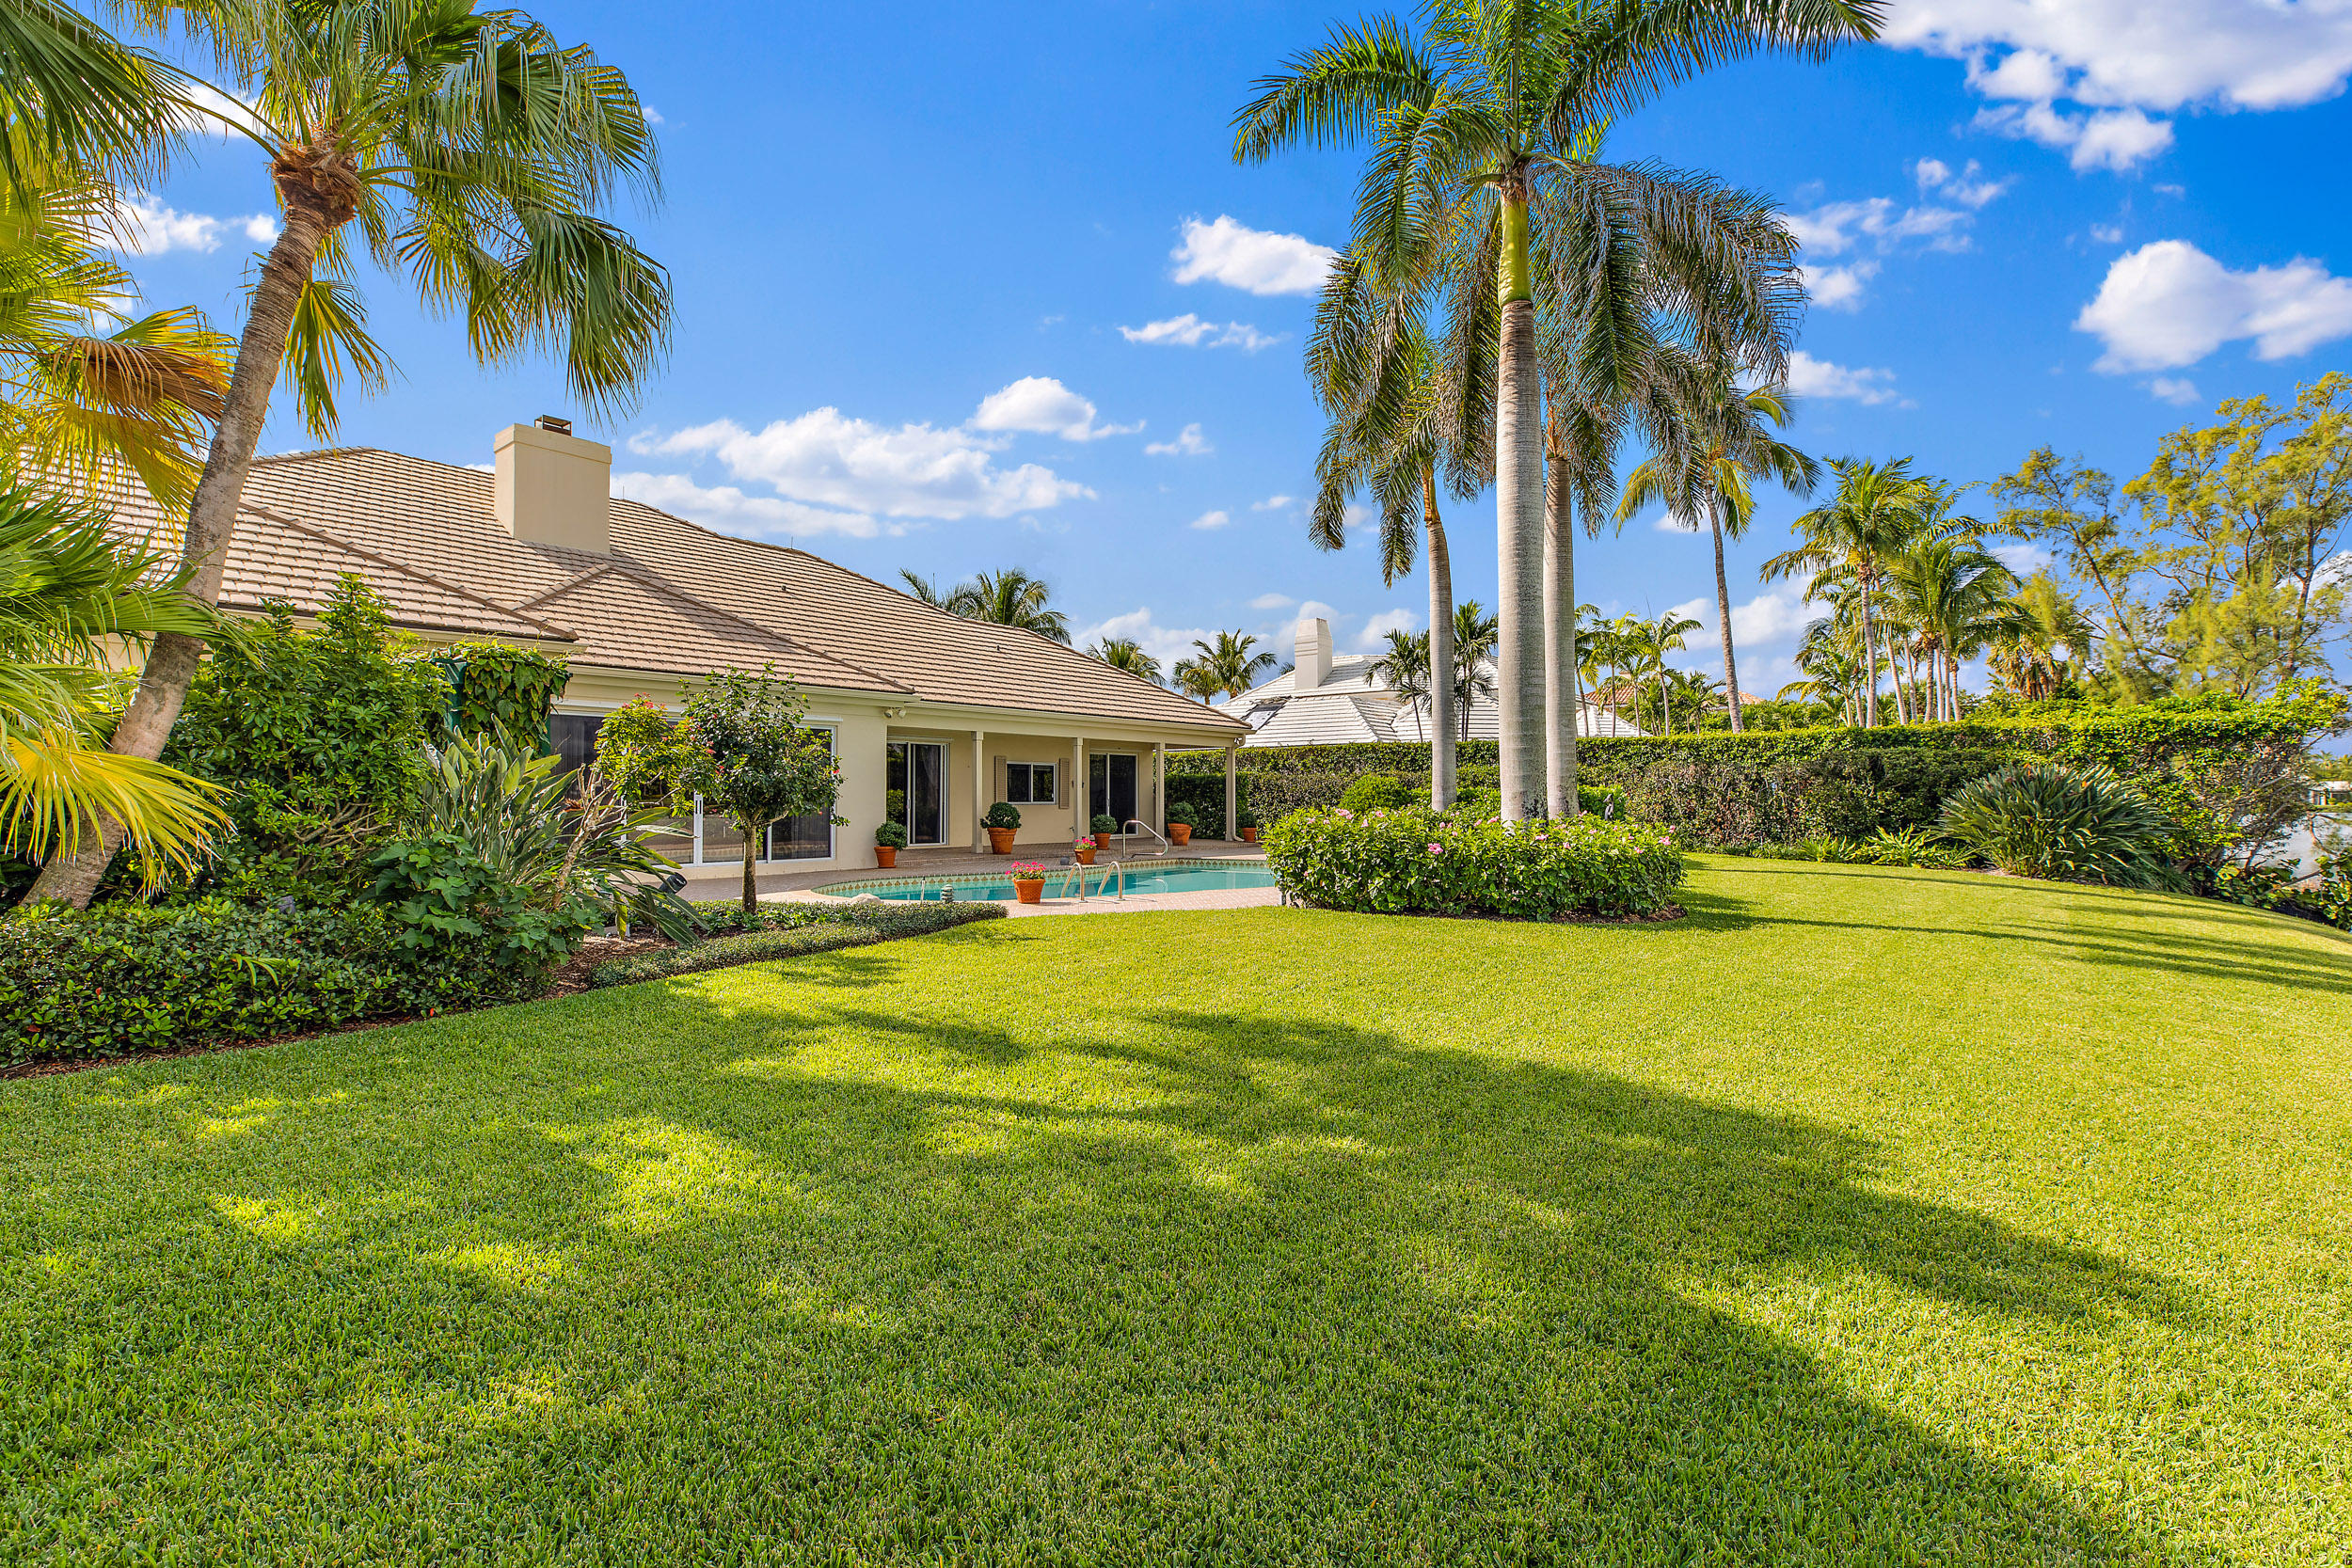 671 Turtle Beach Road, North Palm Beach, Florida 33408, 4 Bedrooms Bedrooms, ,4.1 BathroomsBathrooms,A,Single family,Turtle Beach,RX-10486753